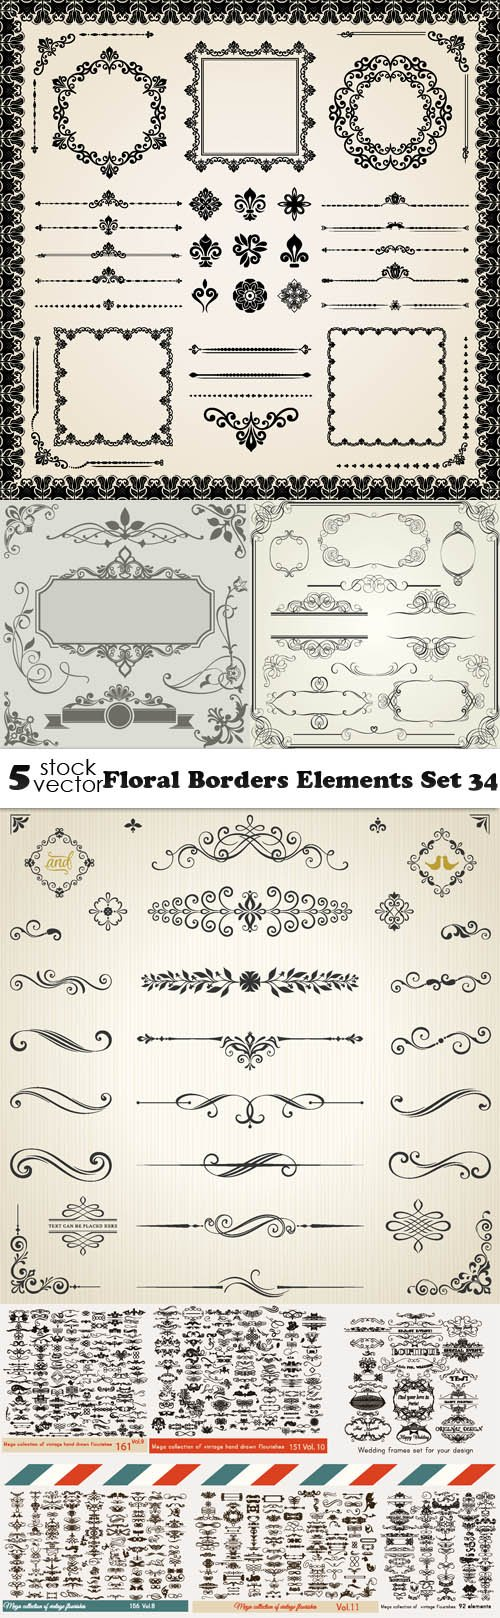 Vectors - Floral Borders Elements Set 34